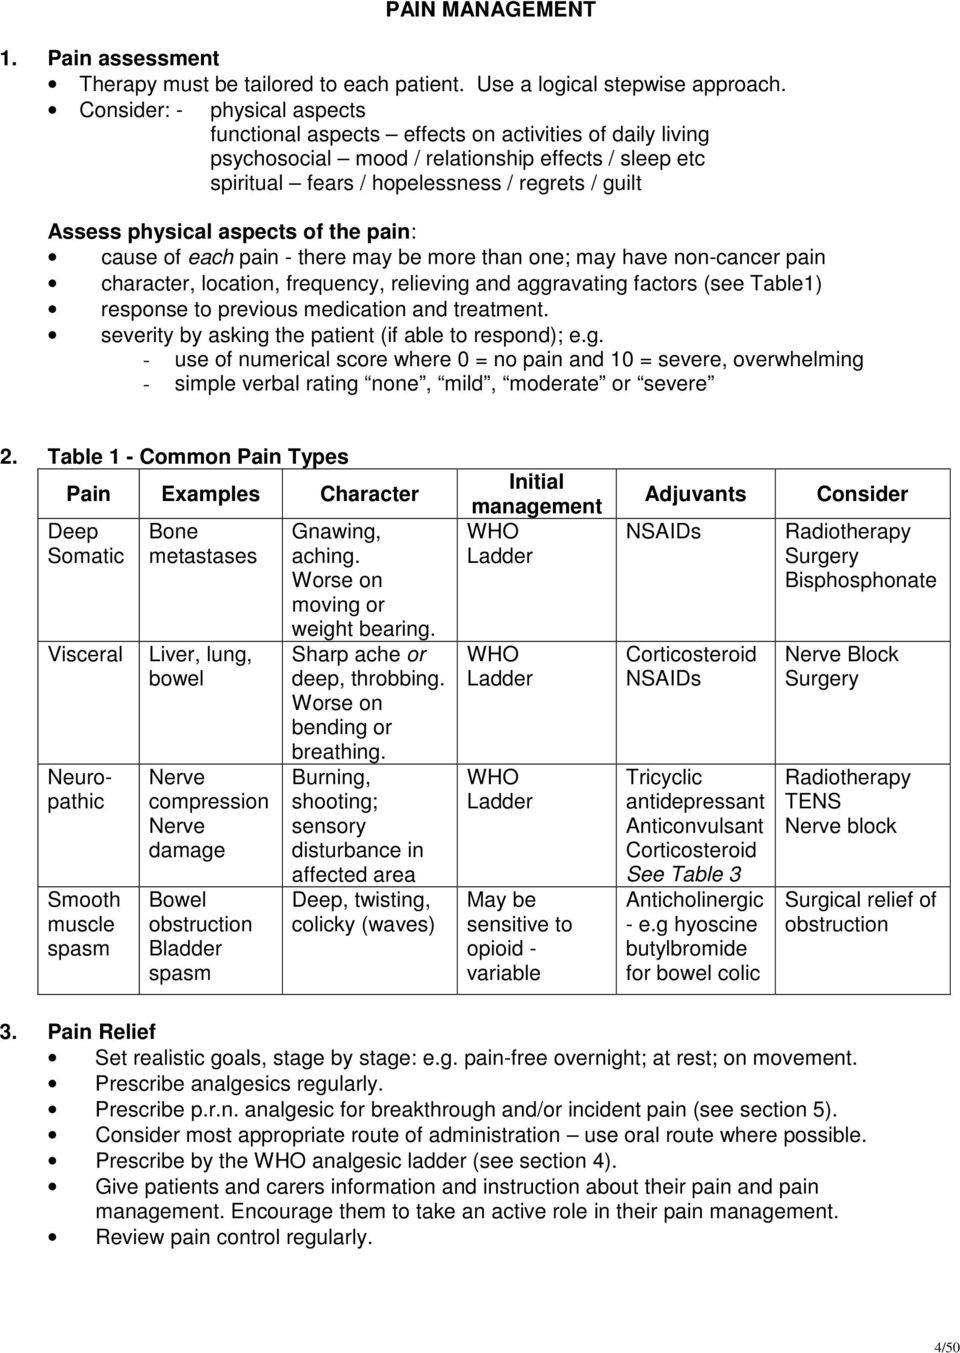 physical aspects of the pain: cause of each pain - there may be more than one; may have non-cancer pain character, location, frequency, relieving and aggravating factors (see Table1) response to